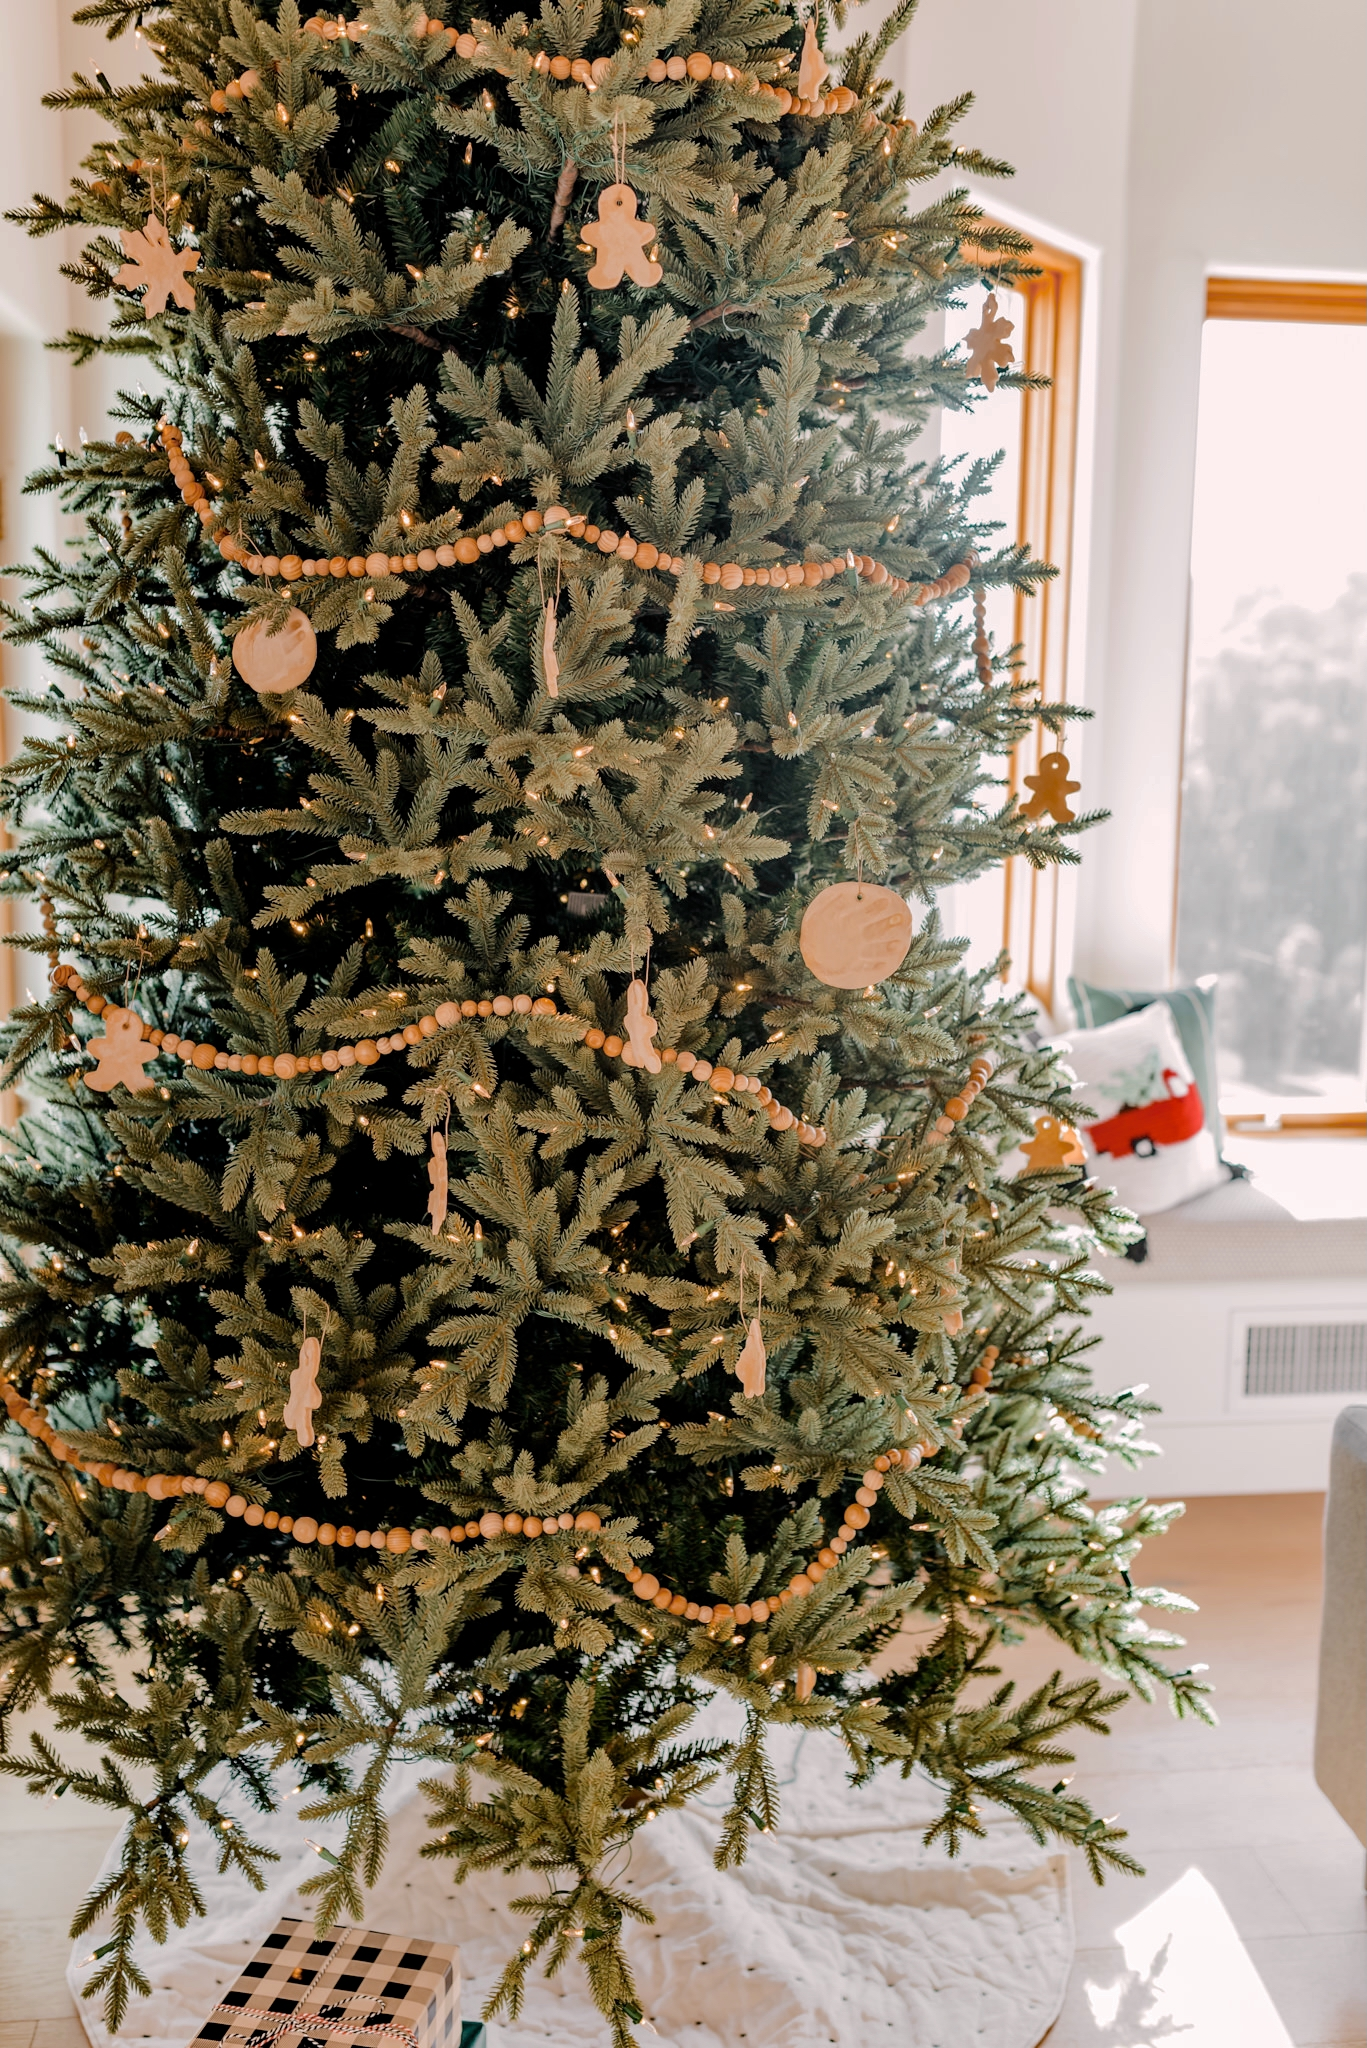 Holiday Gift Guide for the Home  Gifts for the Home by popular San Diego life and style blog, Navy Grace: image of a Christmas tree decorated with salt dough ornaments and a wooden bead garland.